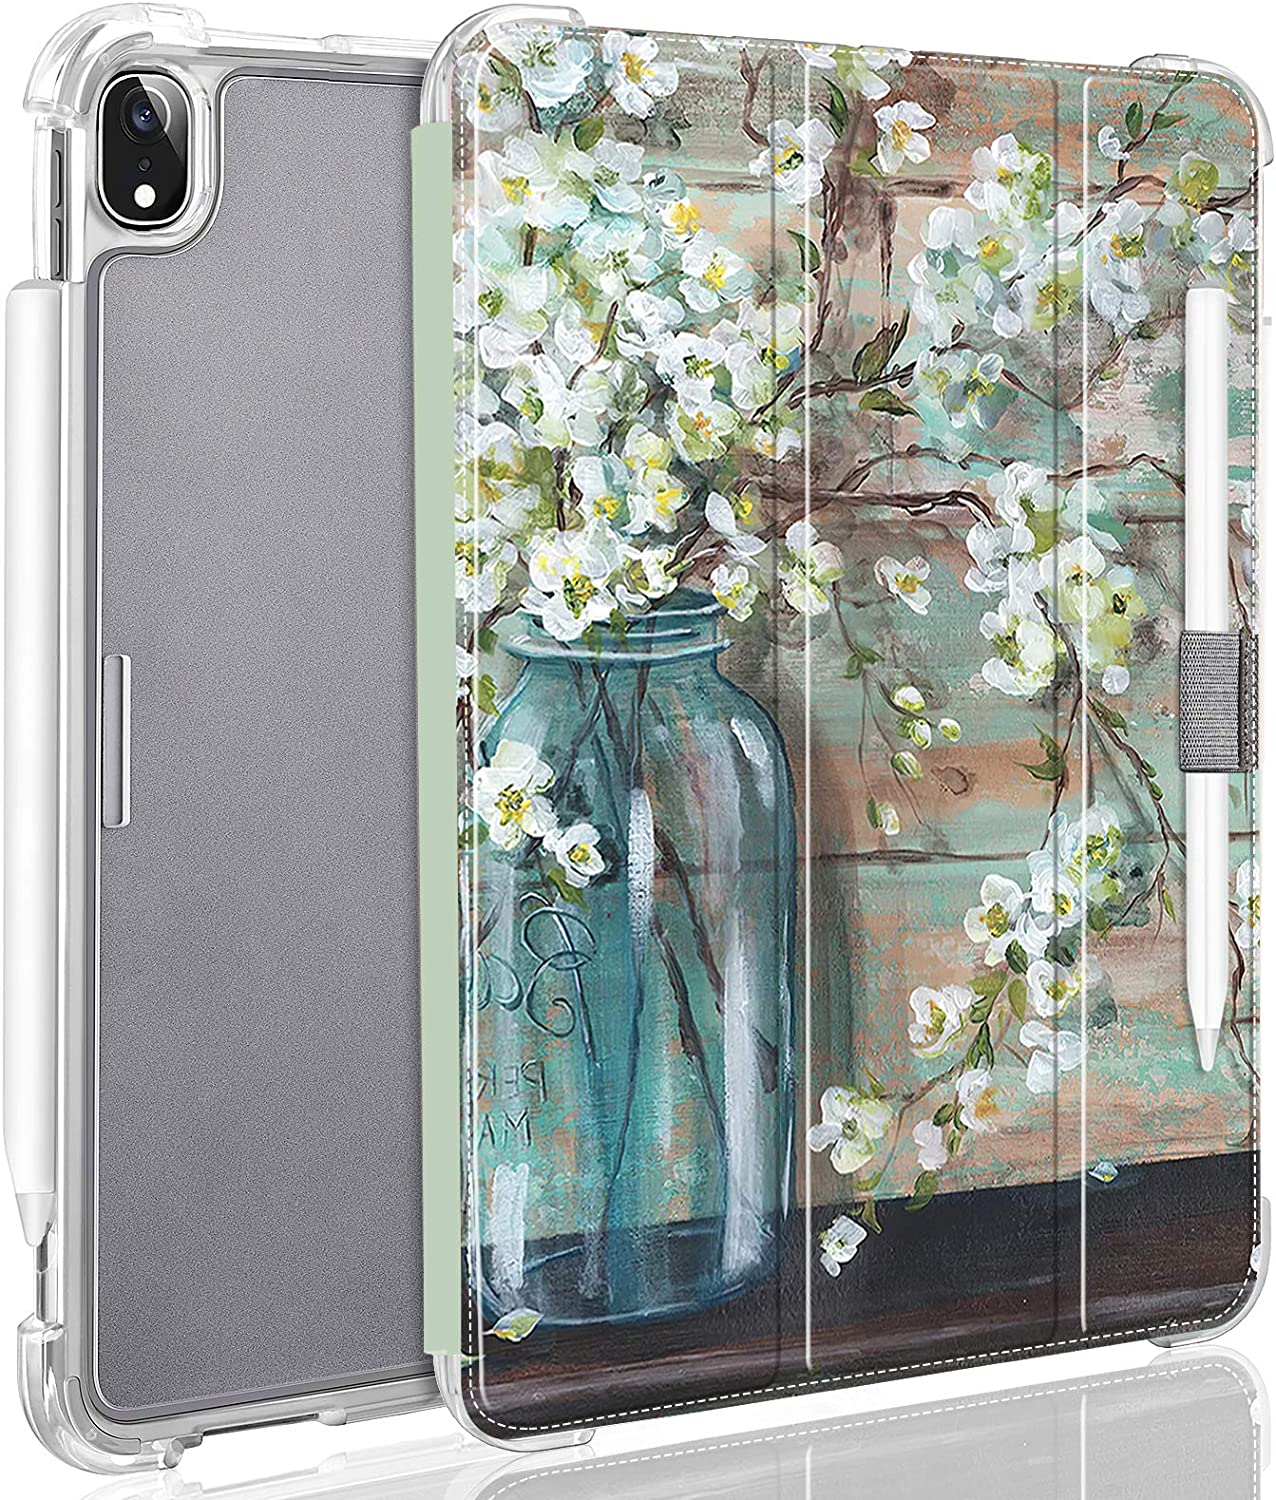 Case for iPad Air 4 2020 10.9 Inch Auto Sleep/Wake Cover [Support Apple Pencil 2 Charging] Smart Stand Translucent Frosted Back Cover Case for iPad Air 10.9 Inch (4th Gen) 2020 White Flower